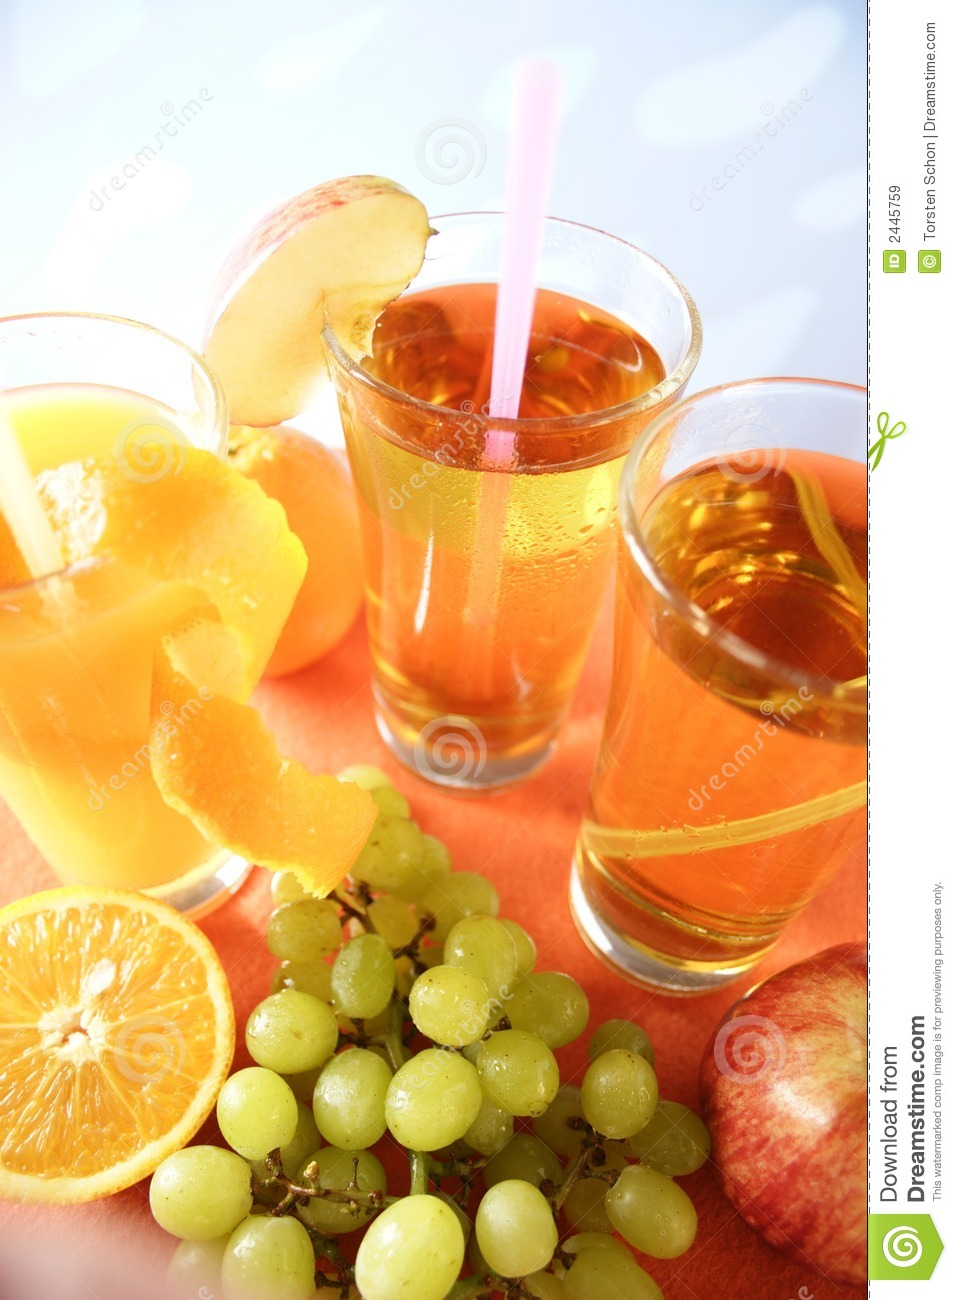 Juicy thirst quencher